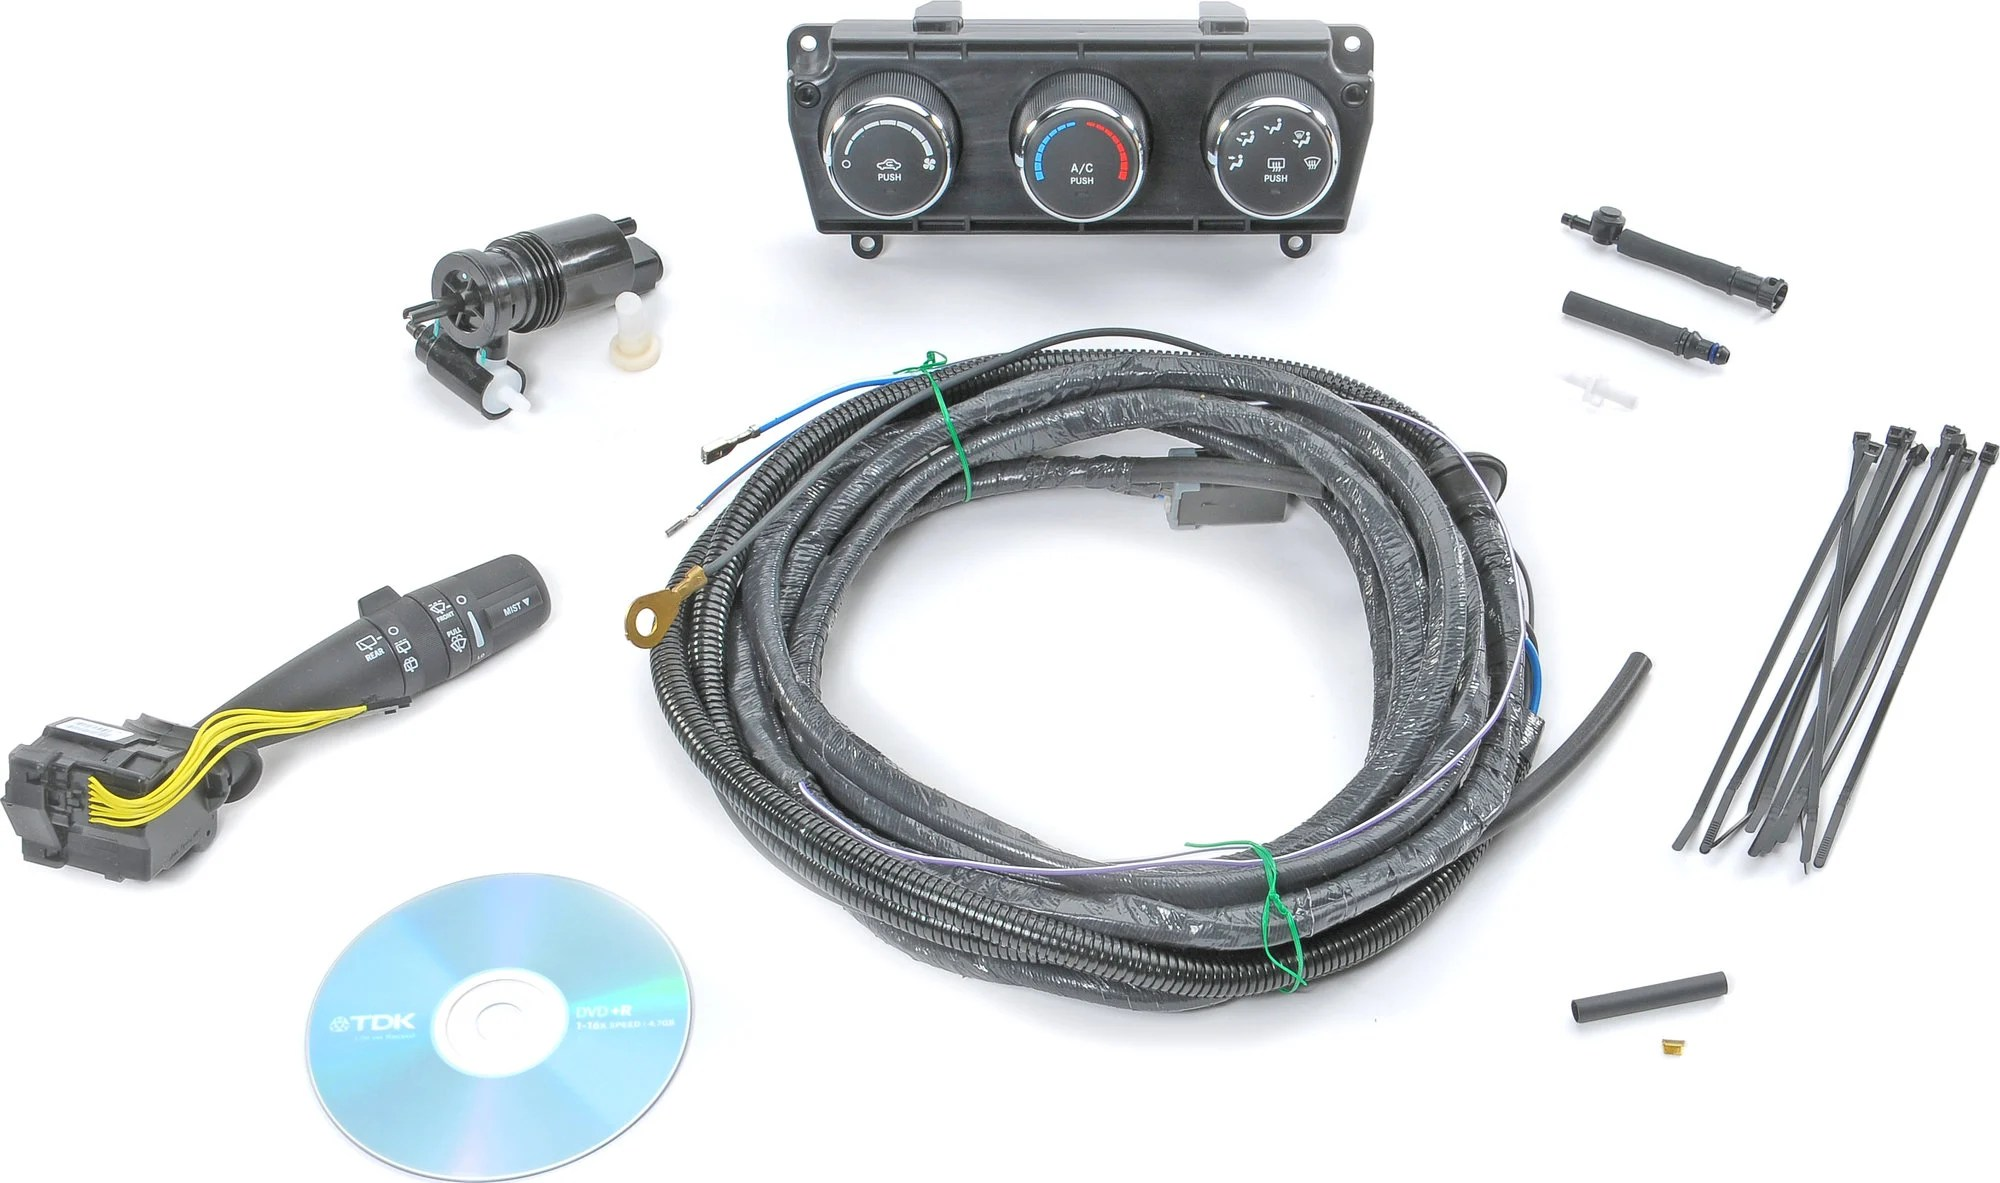 hight resolution of  154368 mopar hardtop wiring kit for 11 16 jeep wrangler wrangler